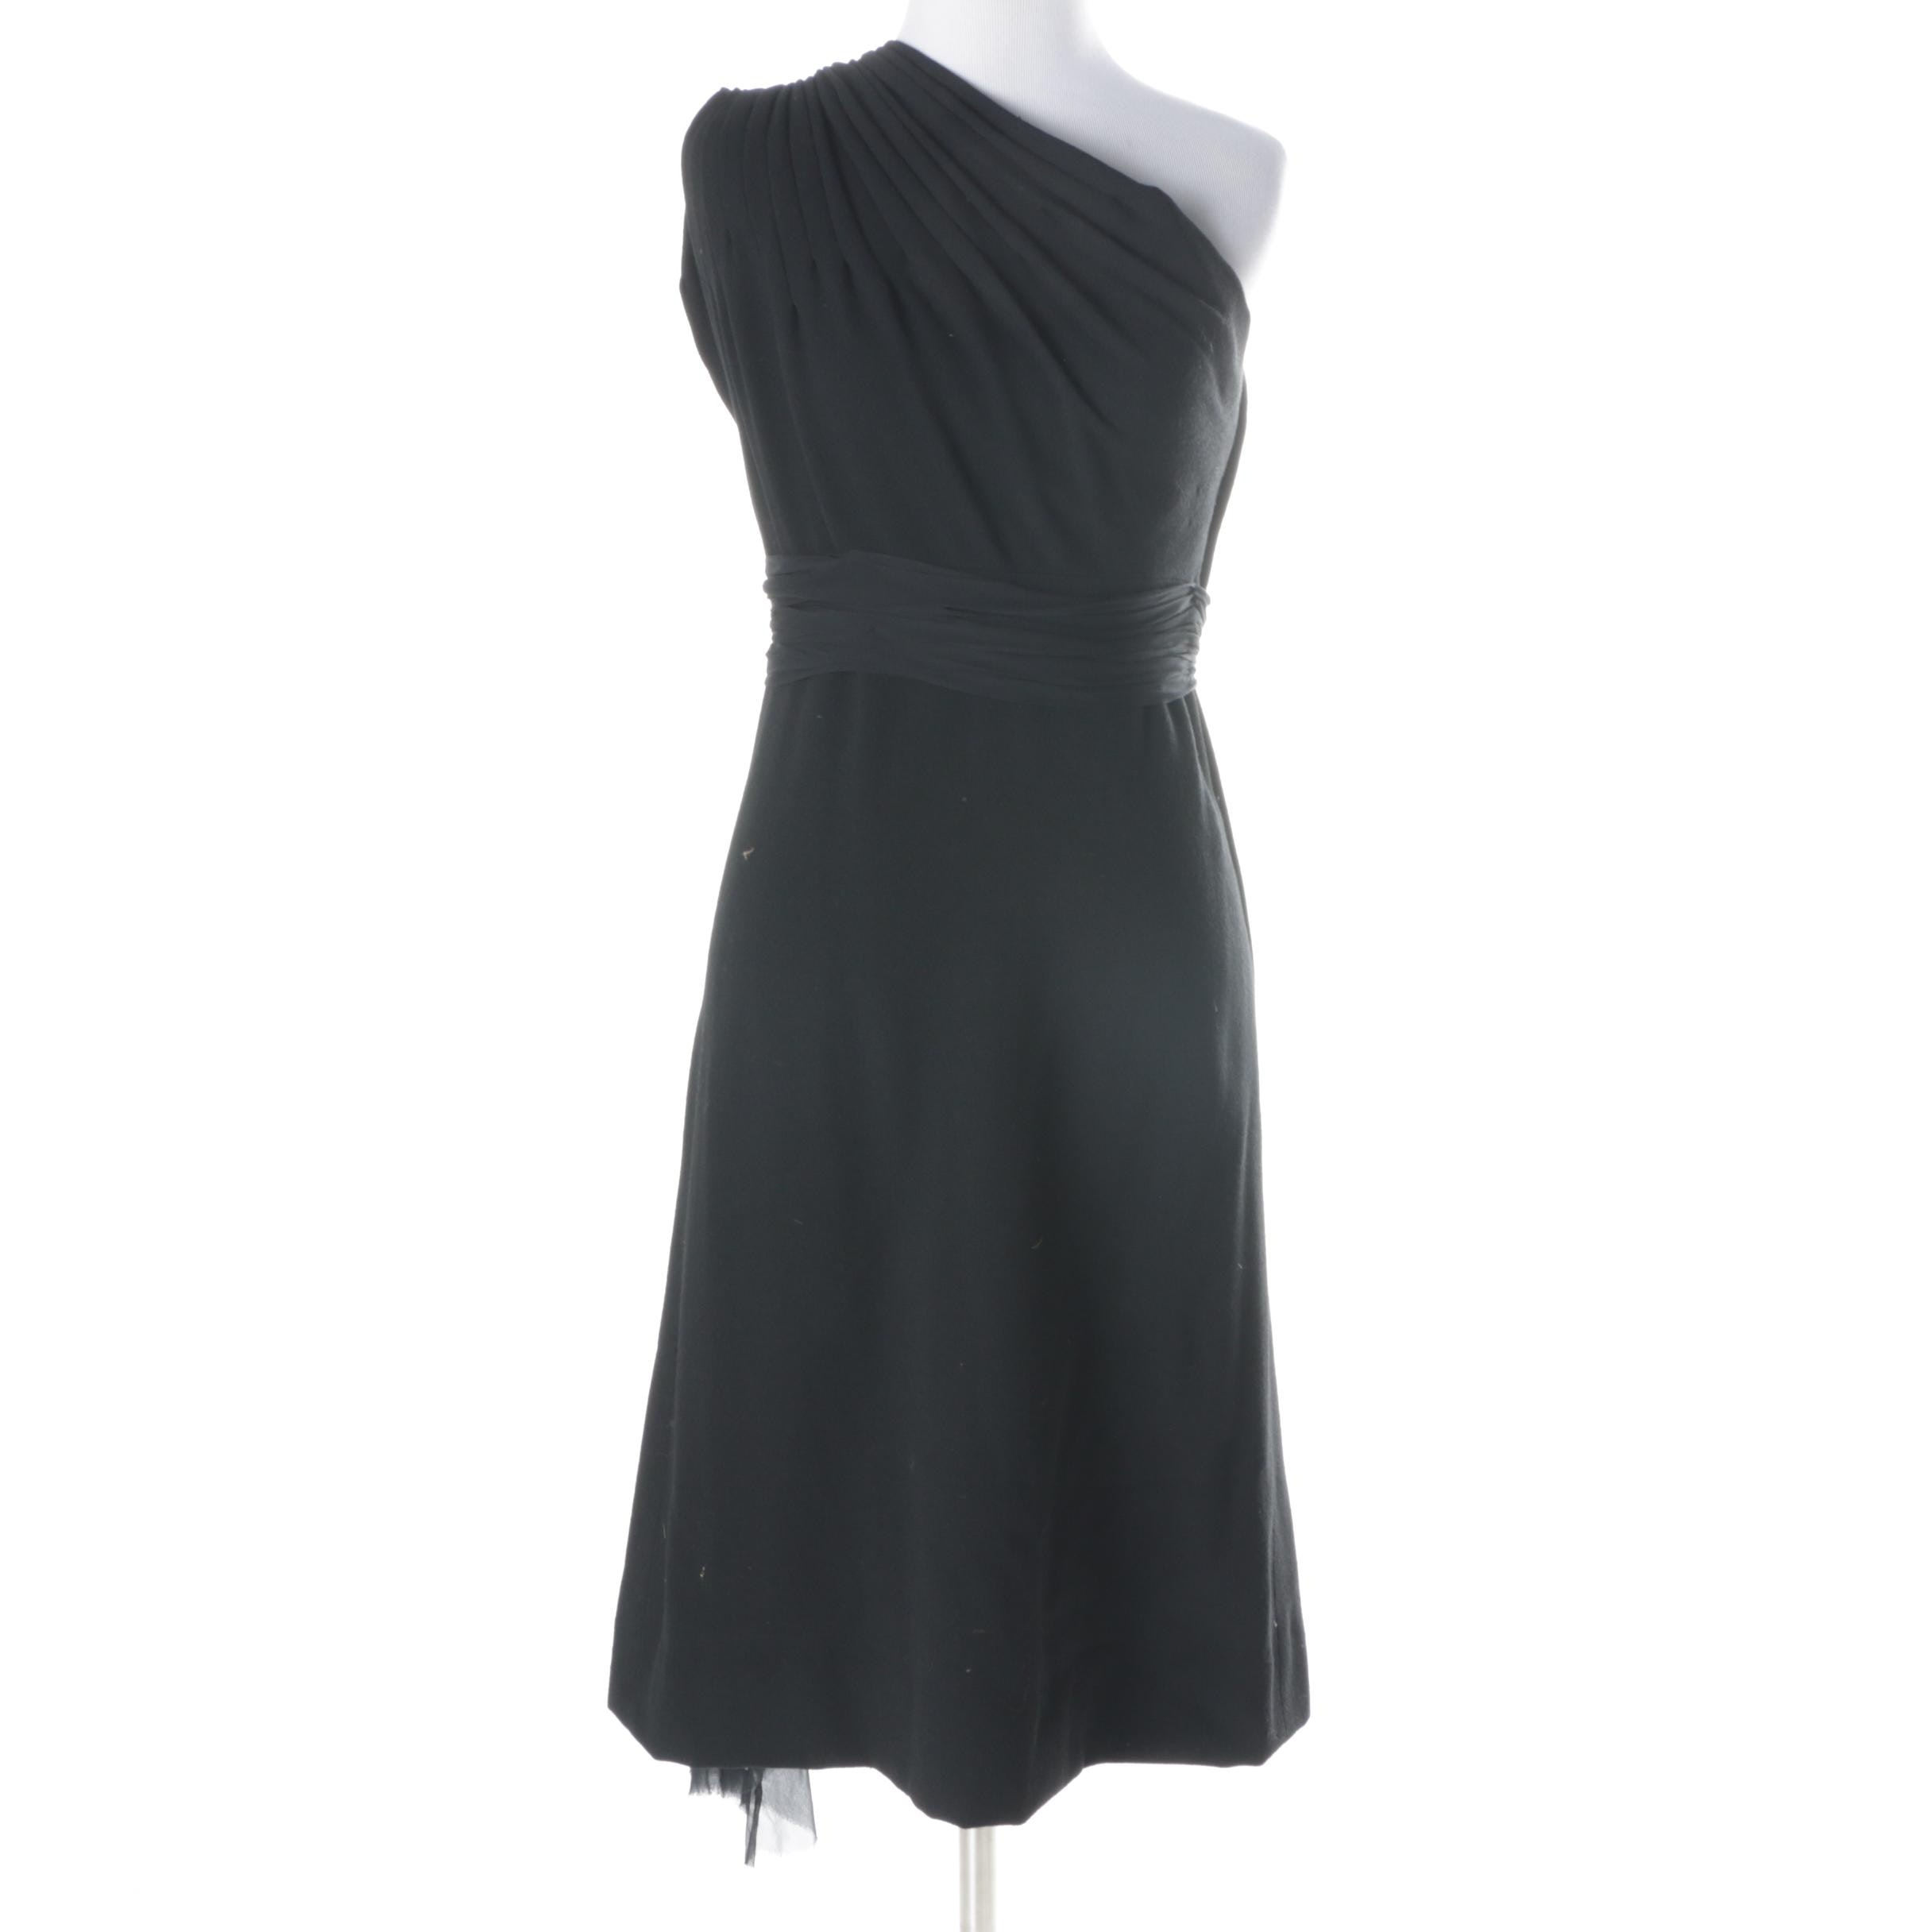 Vintage Cardinali Black Evening Dress